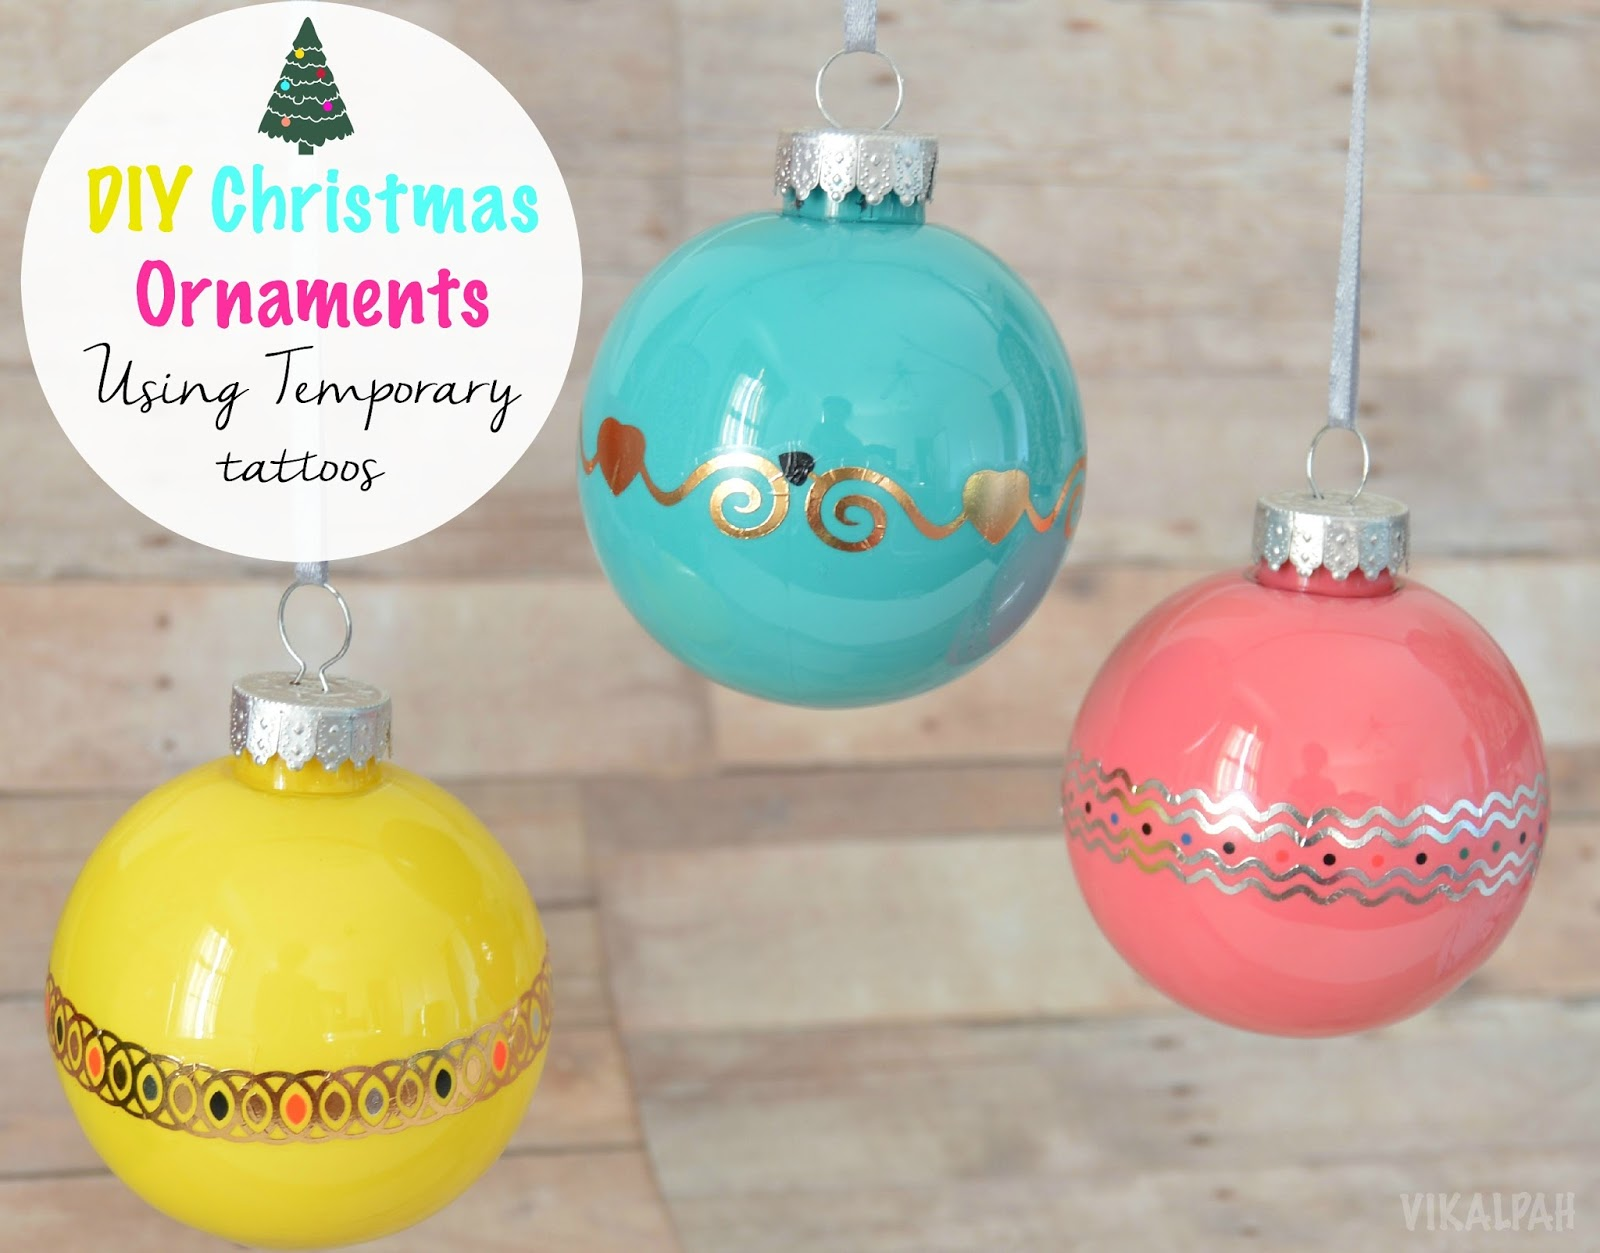 DIY Christmas Ornament using Temporary Tattoos